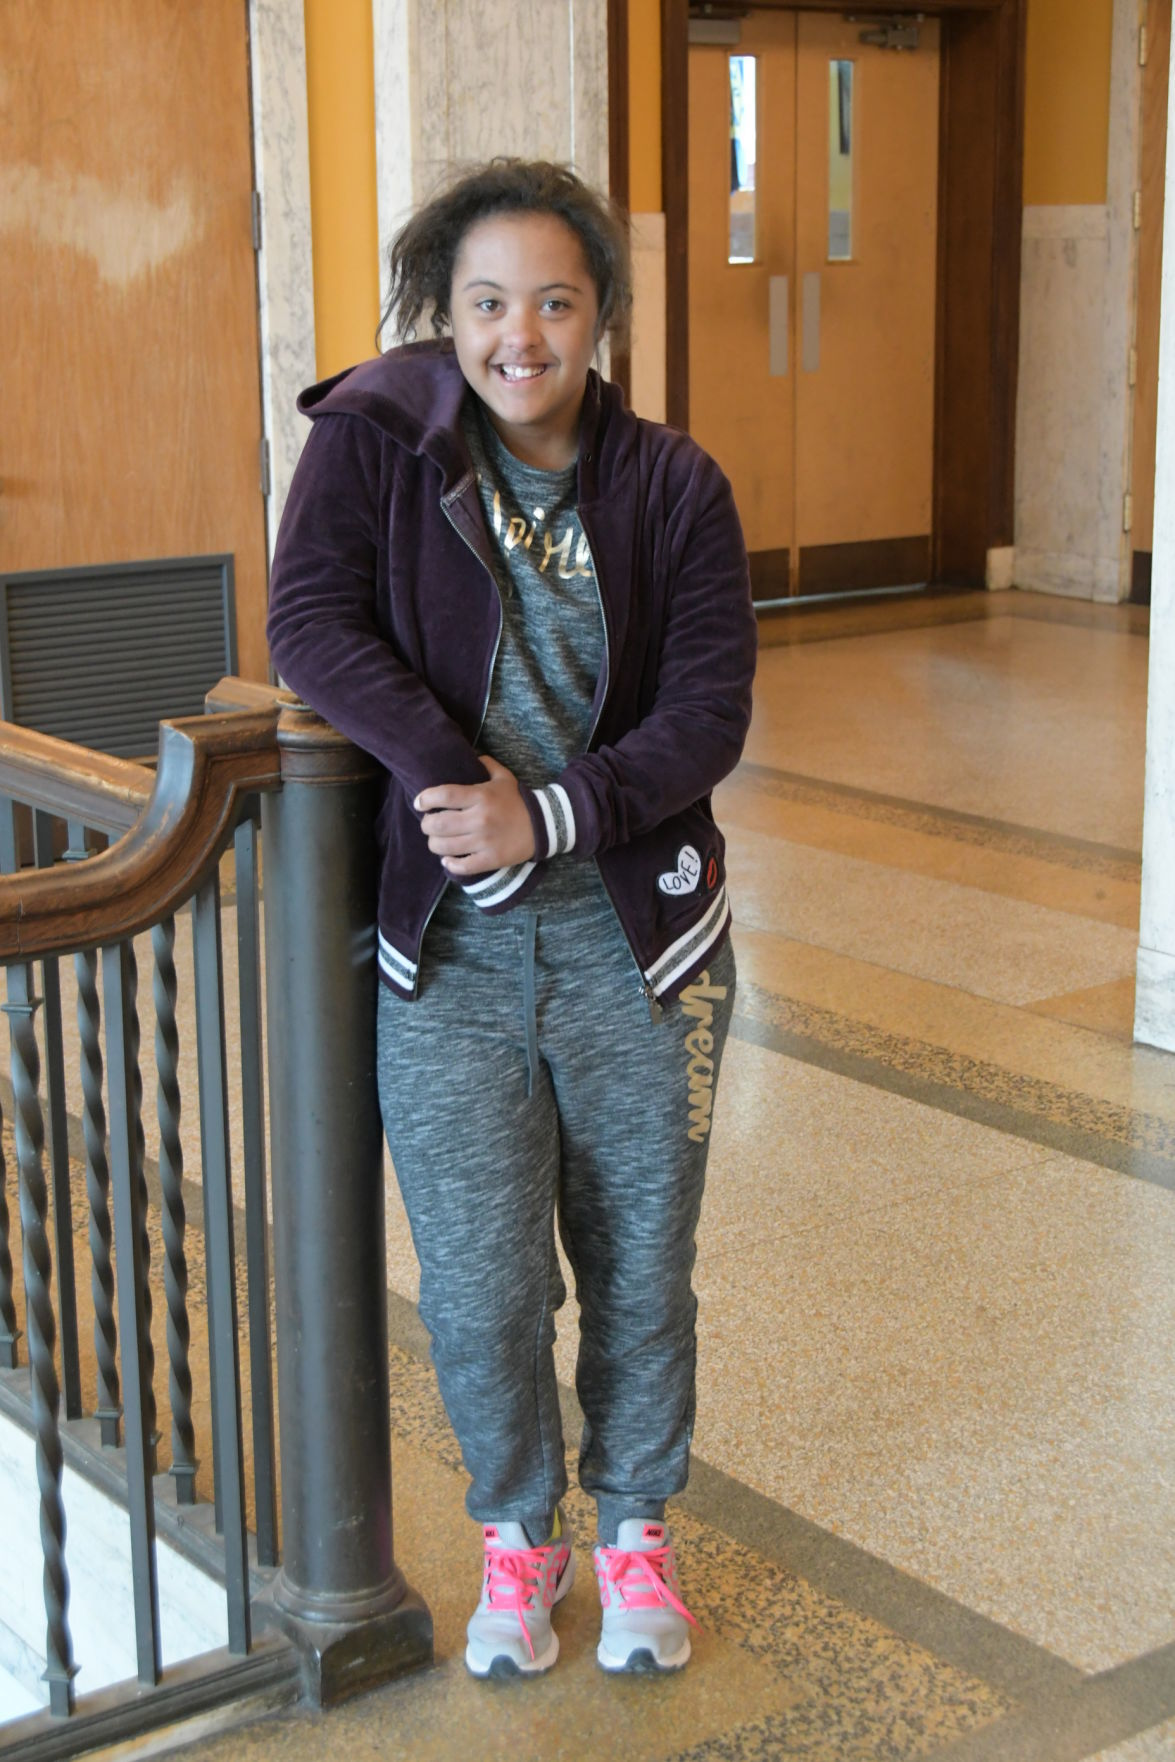 academy pathways prepare students for college, career at roxborough high